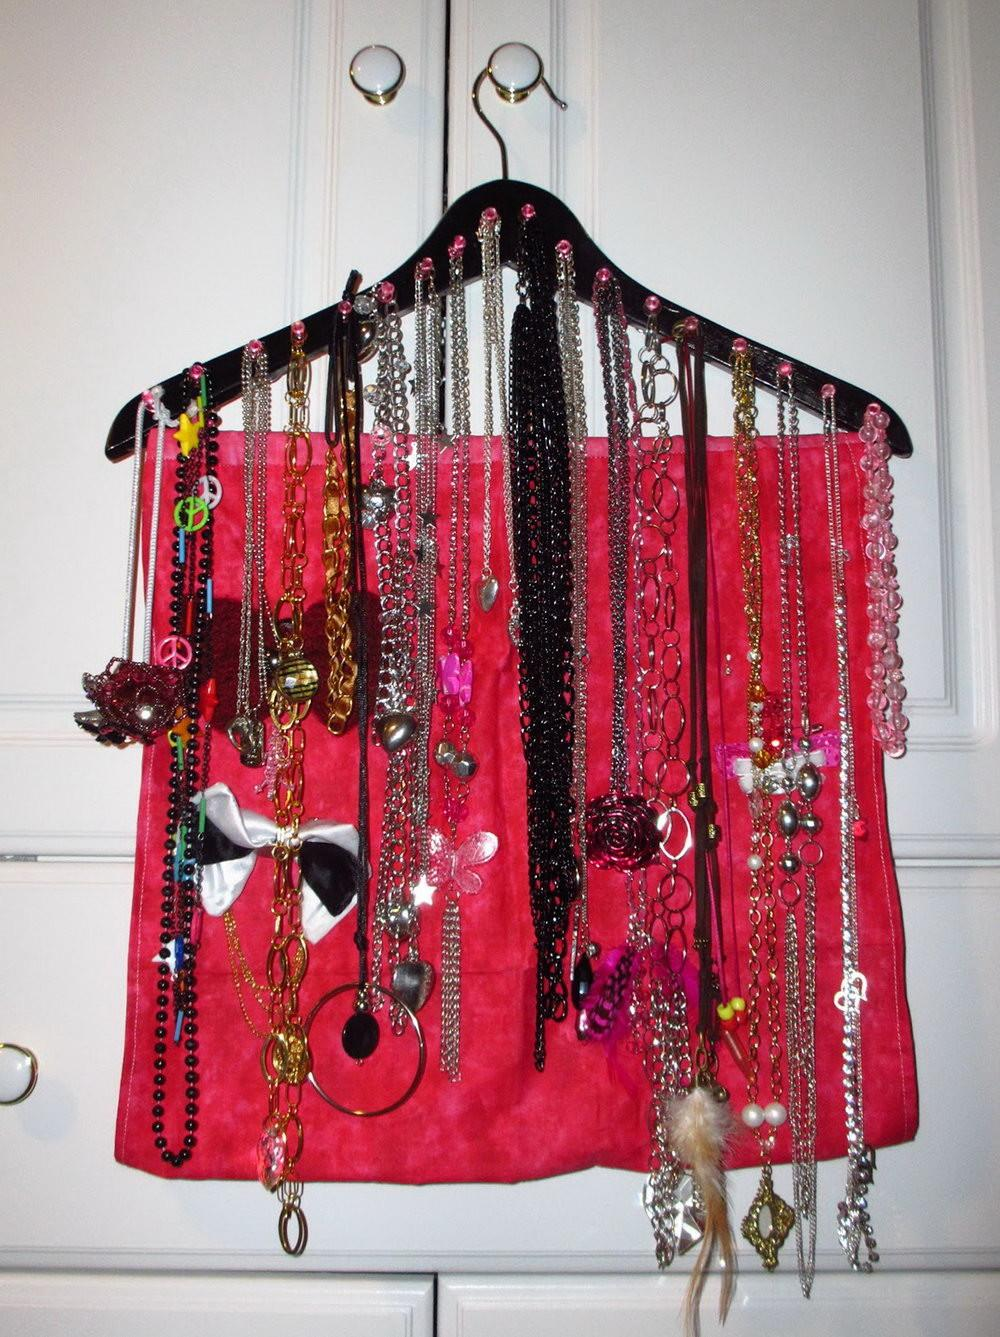 Wall Hanging Necklace Organizer Home Design Ideas